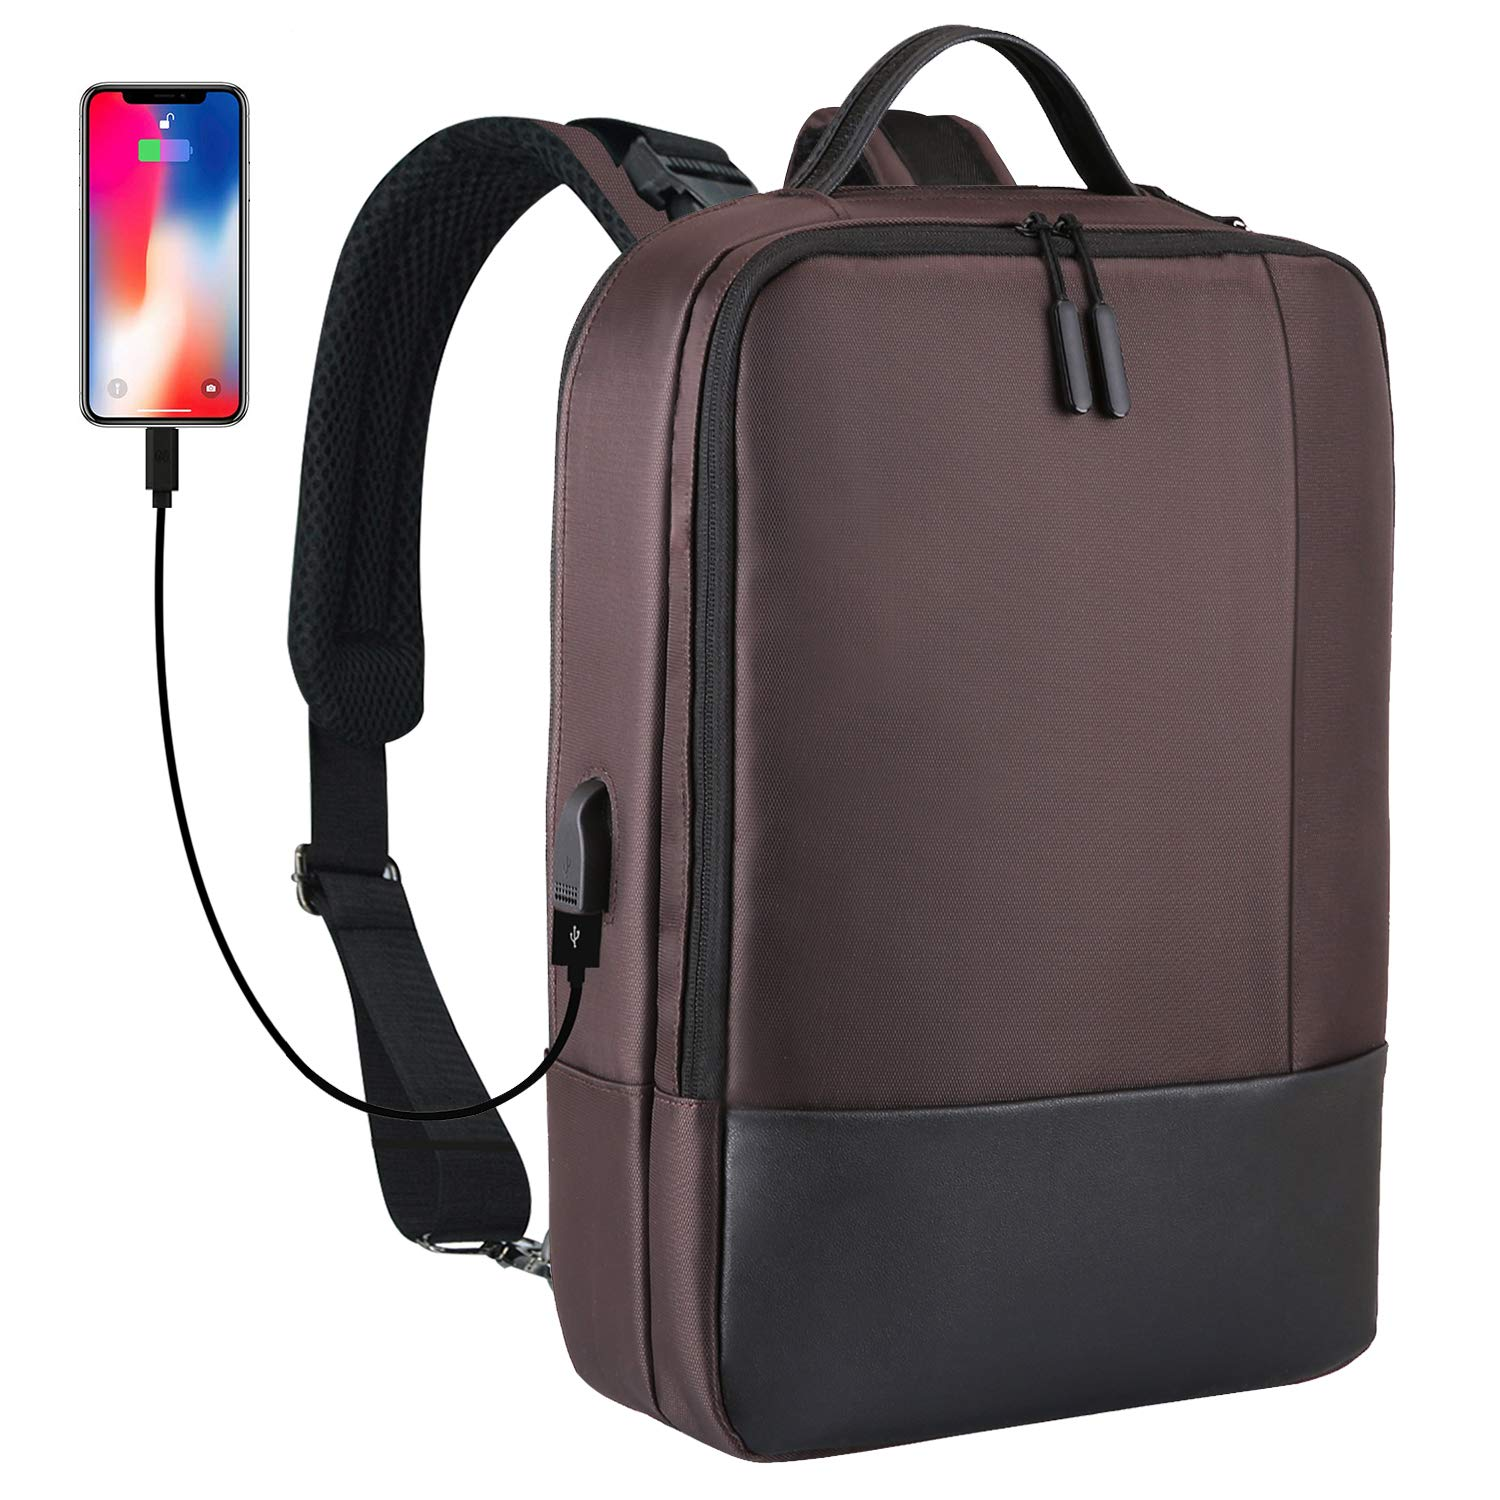 Convertible Laptop Backpack Lightweight Travel Business Bag Multi-functional Shoulder Briefcase Water Resistant College School Bag with USB Charging Port for Women & Men Fits 15.6 Laptop, Coffee